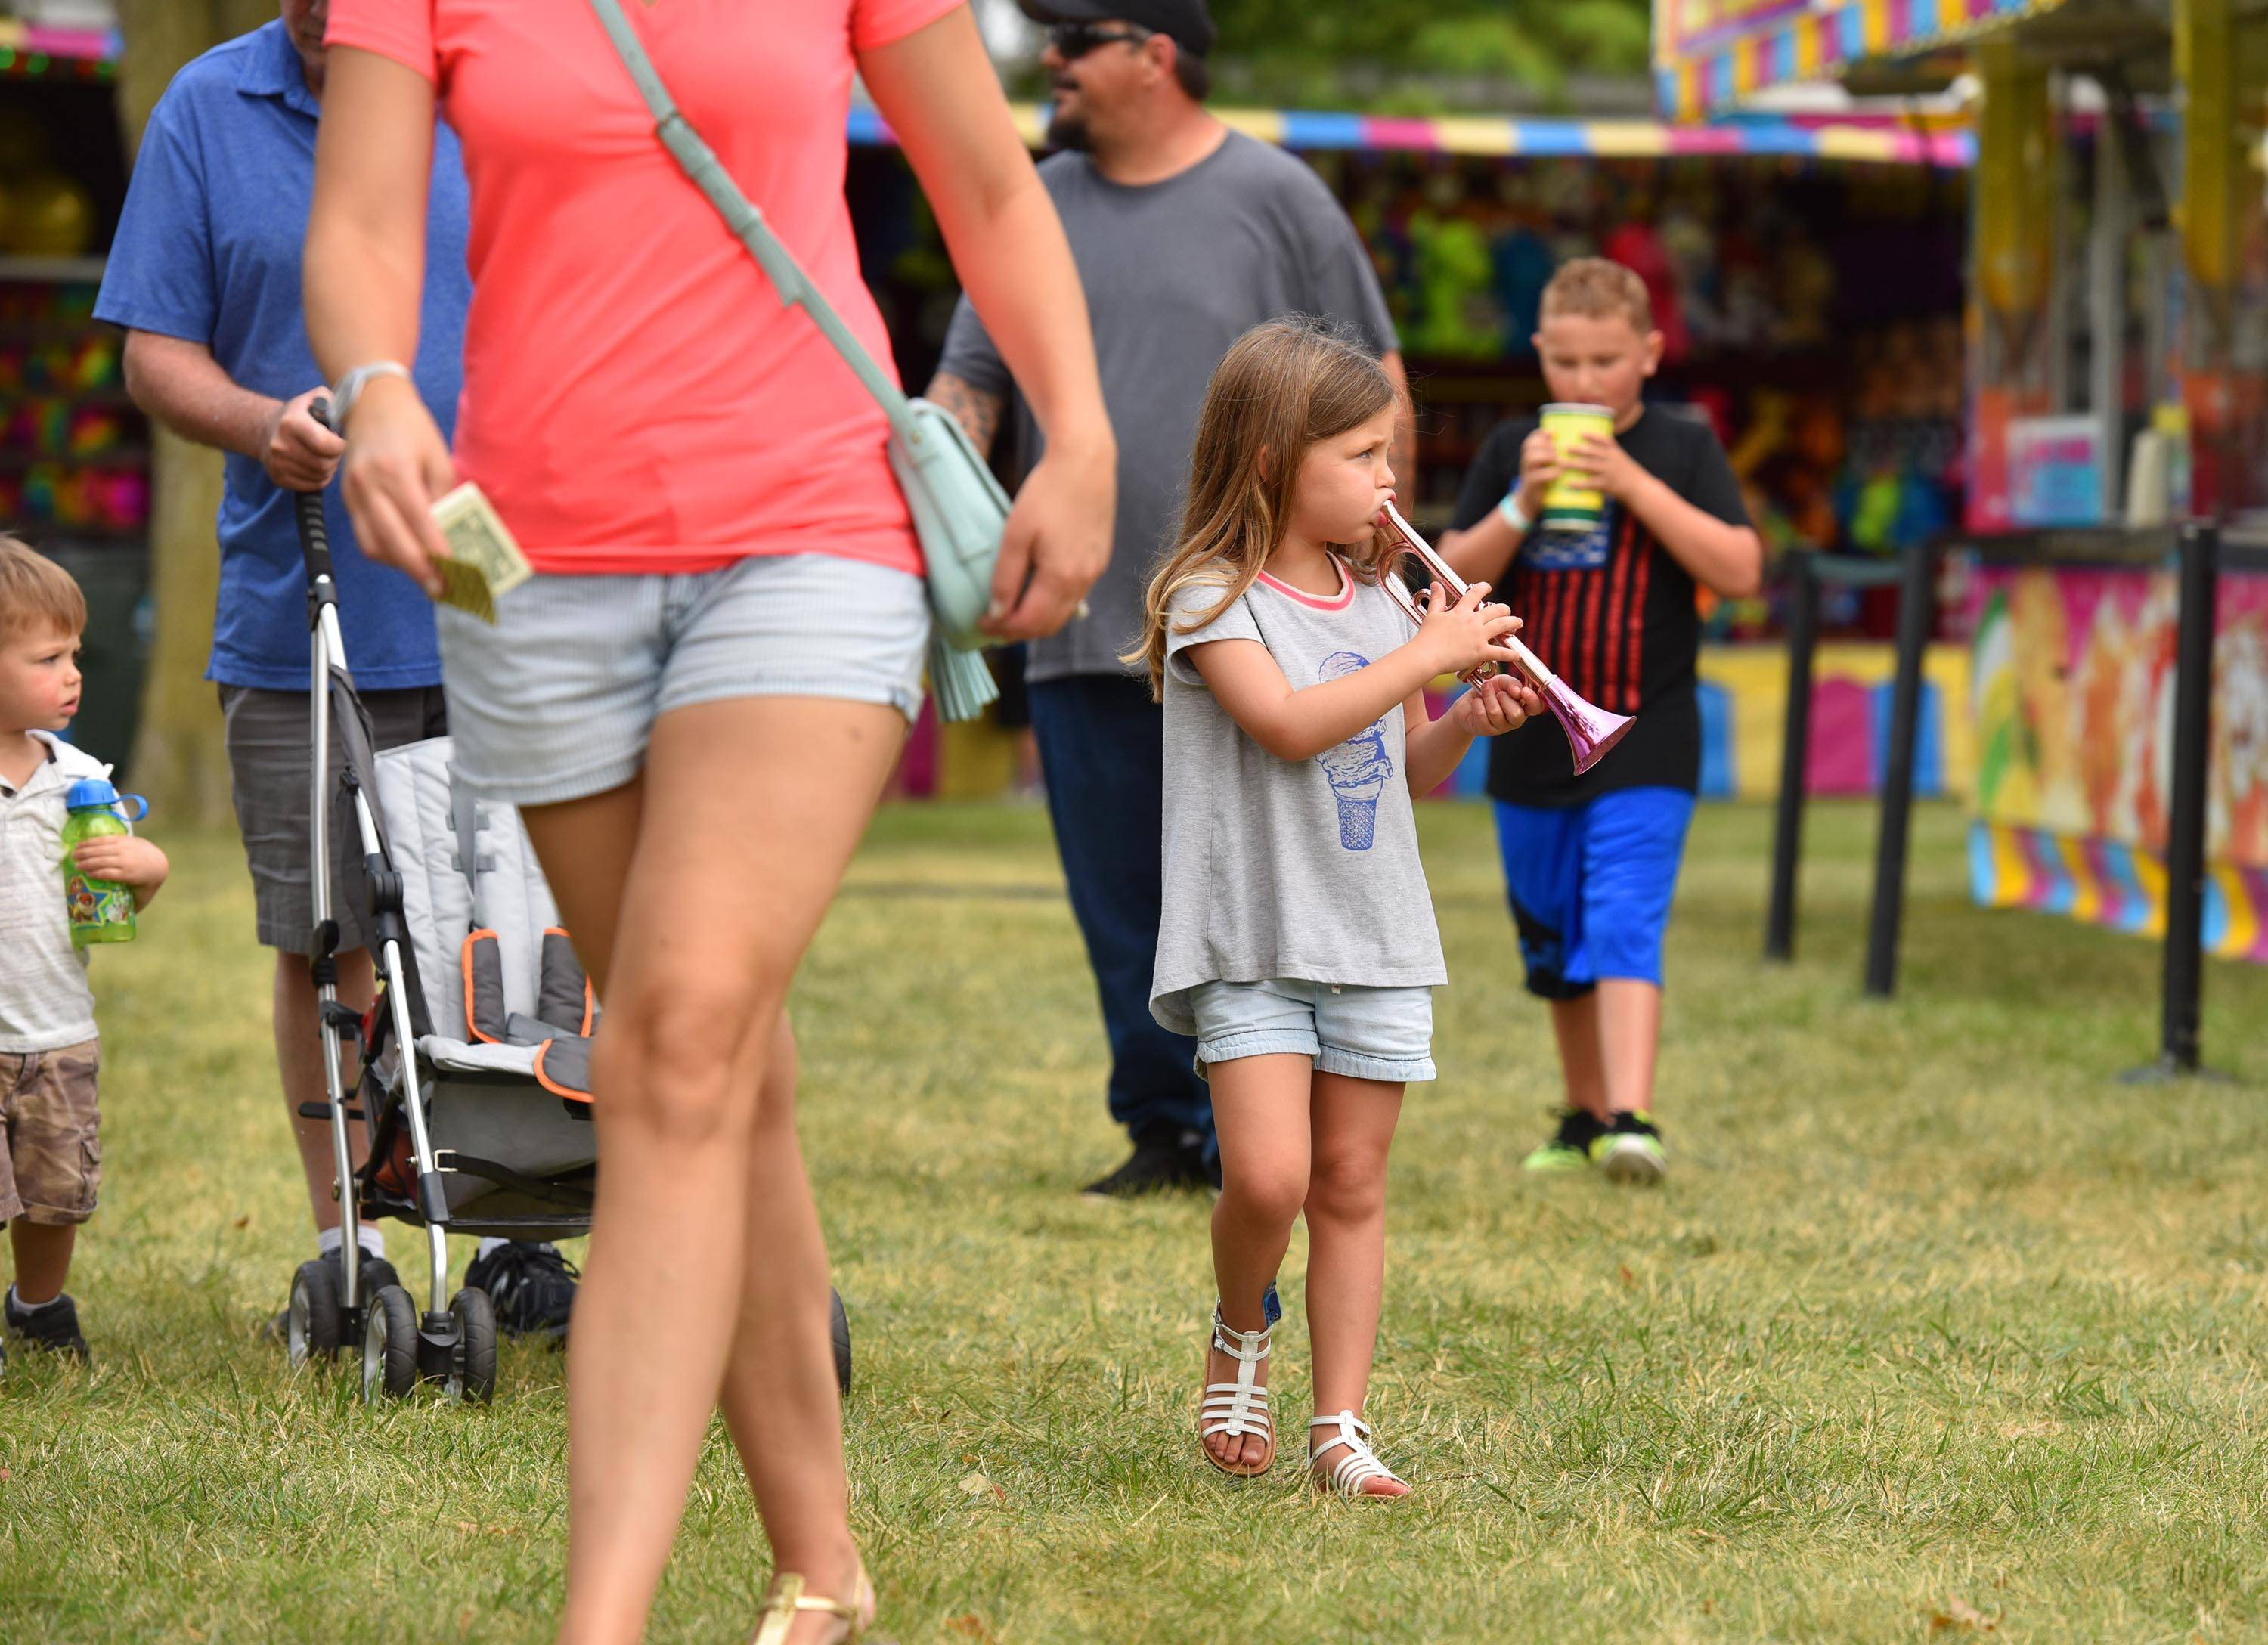 Violet Steinberg, 4, plays the plastic horn that she just won on the midway at the South Elgin Riverfest Express Saturday on the Fox River in South Elgin. She was with her family from St. Charles.